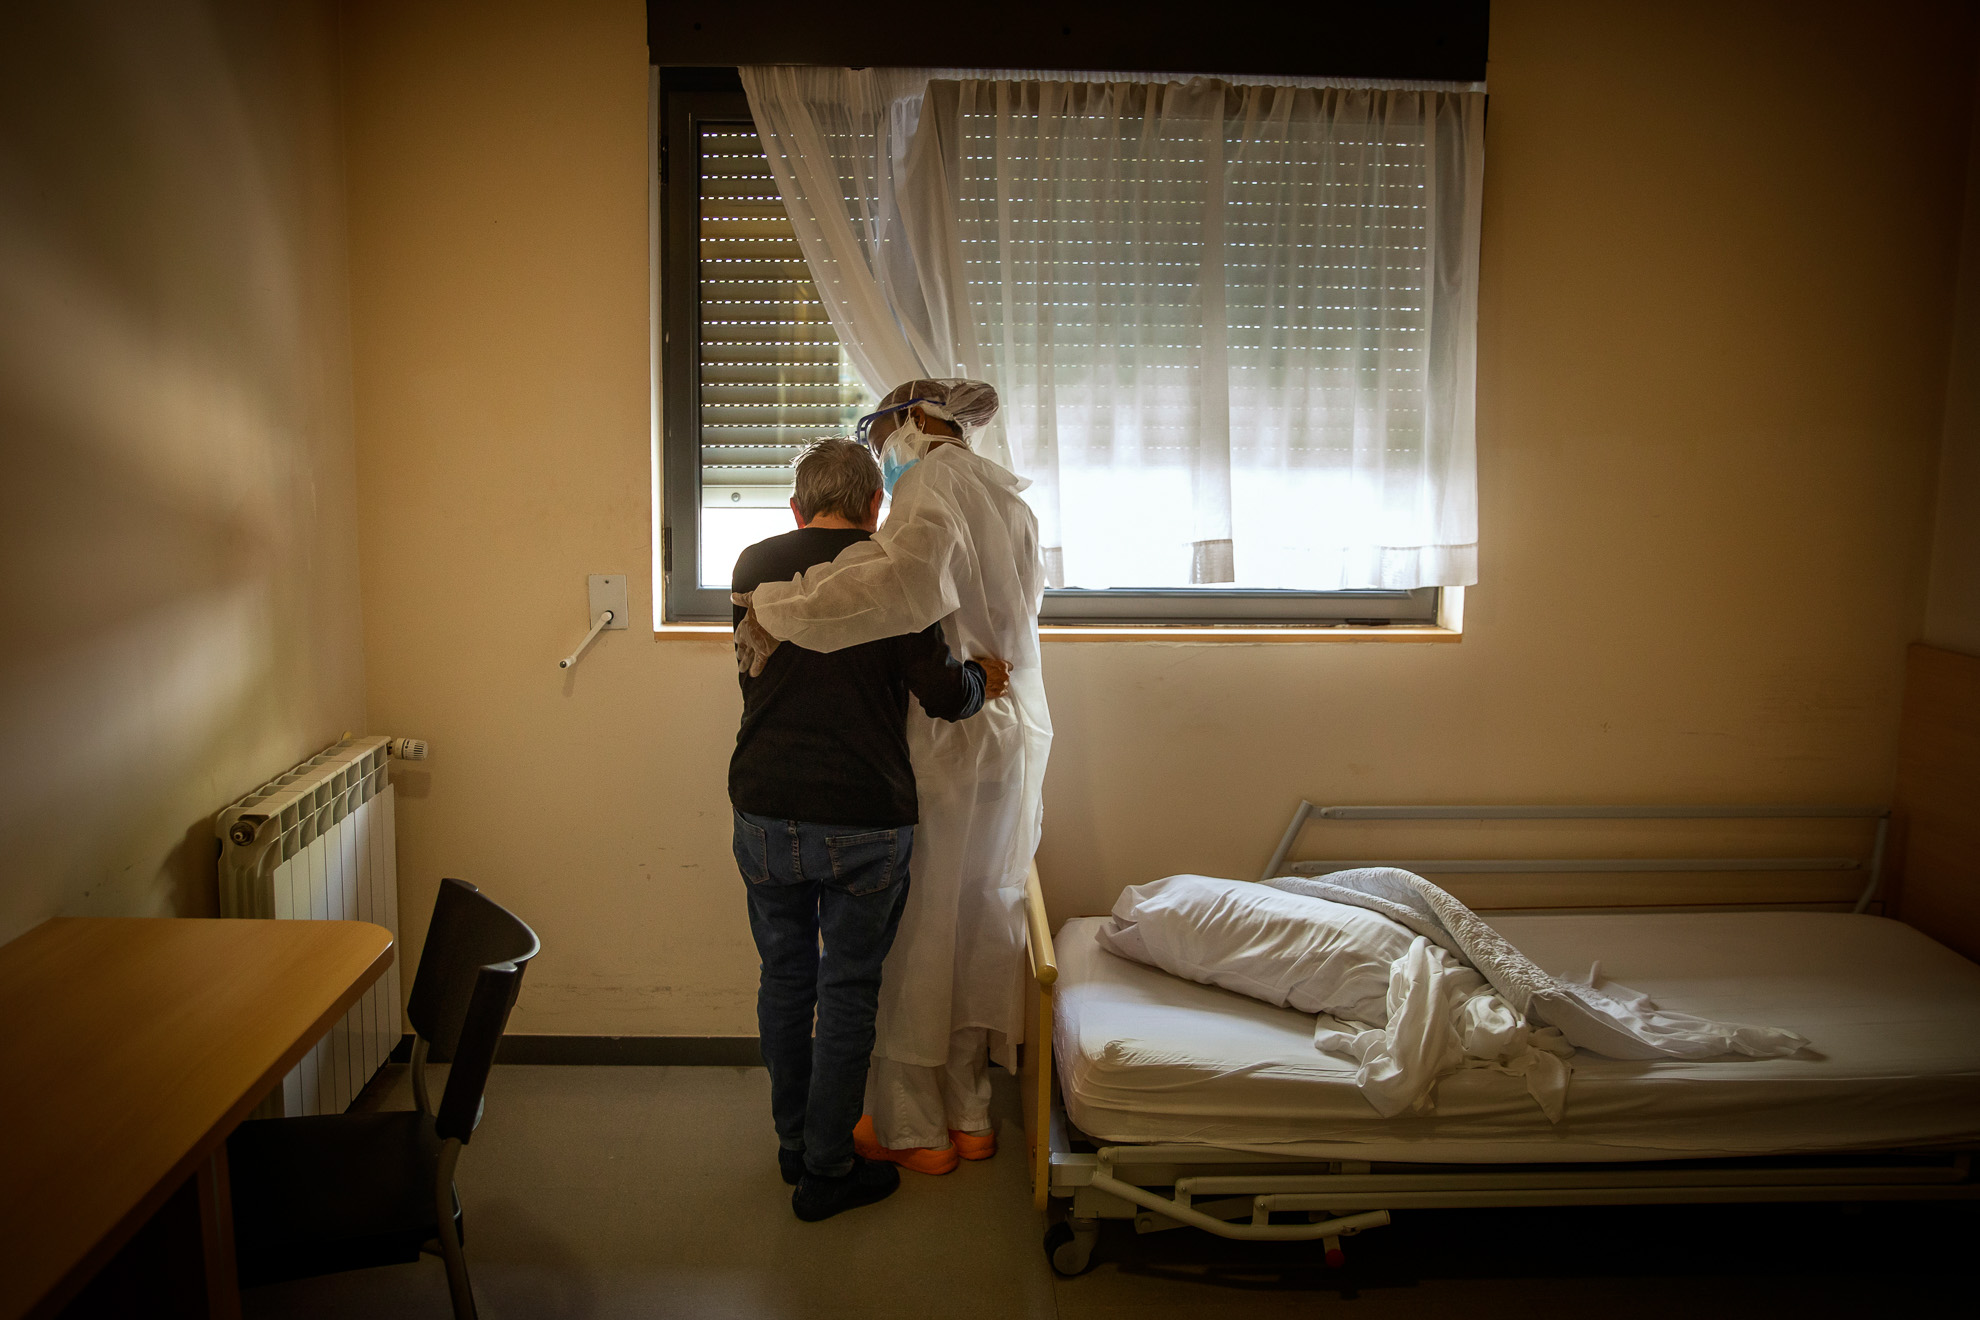 An elderly woman and a worker embrace each other in the room in which the woman remains confined due to the pandemic, at a nursing home, province of Barcelona, ​​Spain, April 29, 2020.